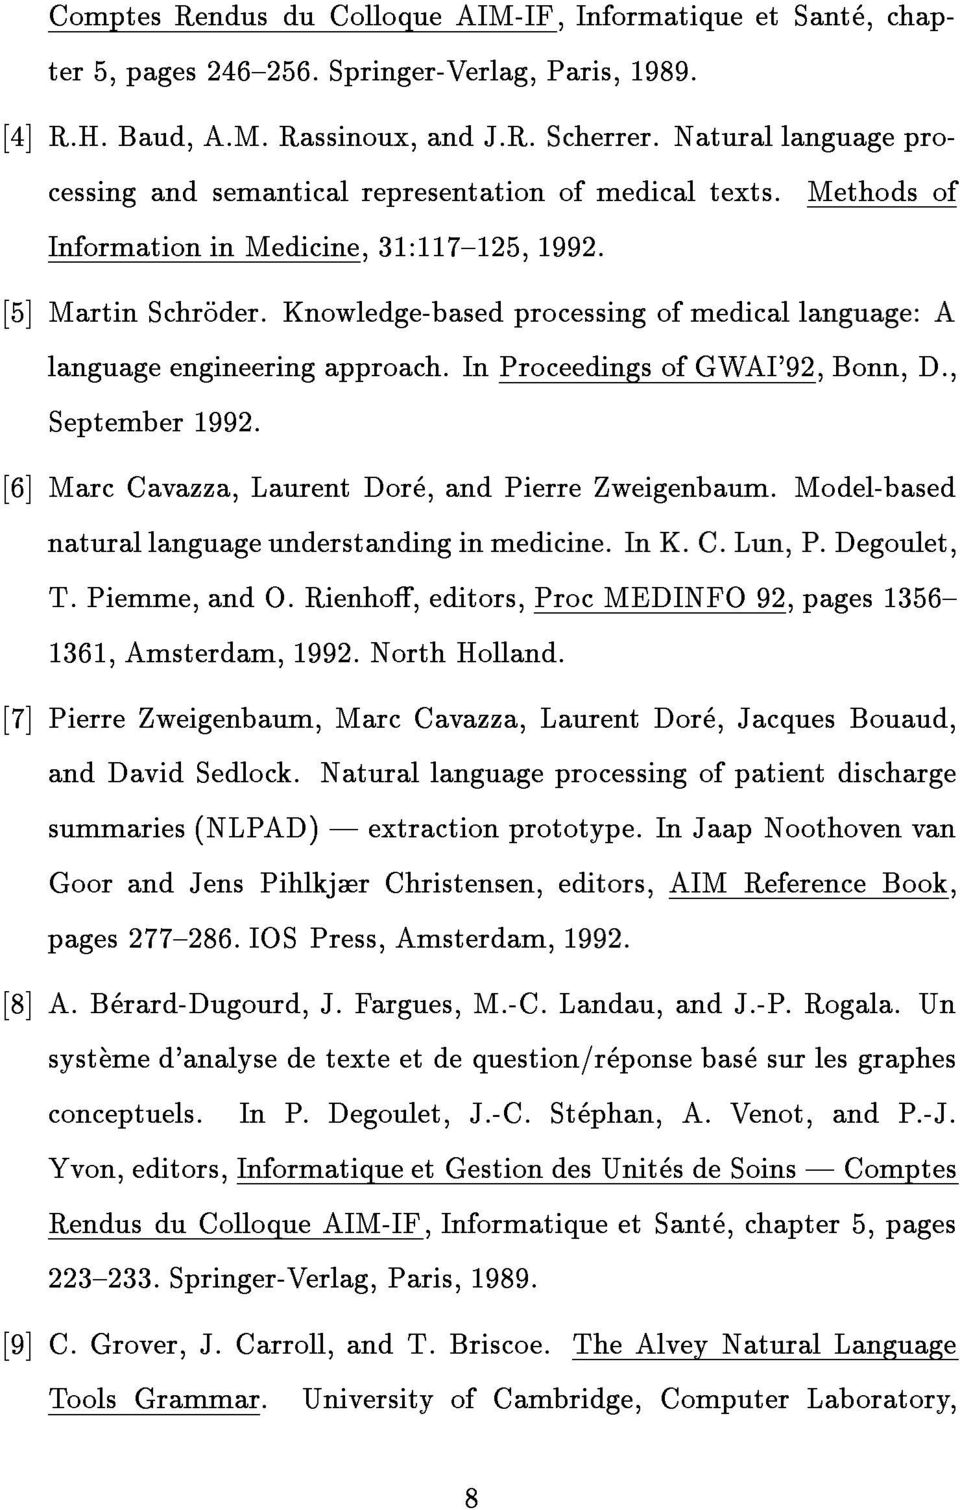 Knowledge-based processing of medical language: A language engineering approach. In Proceedings of GWAI'92, Bonn, D., September 1992. [6] Marc Cavazza, Laurent Dore, and Pierre Zweigenbaum.